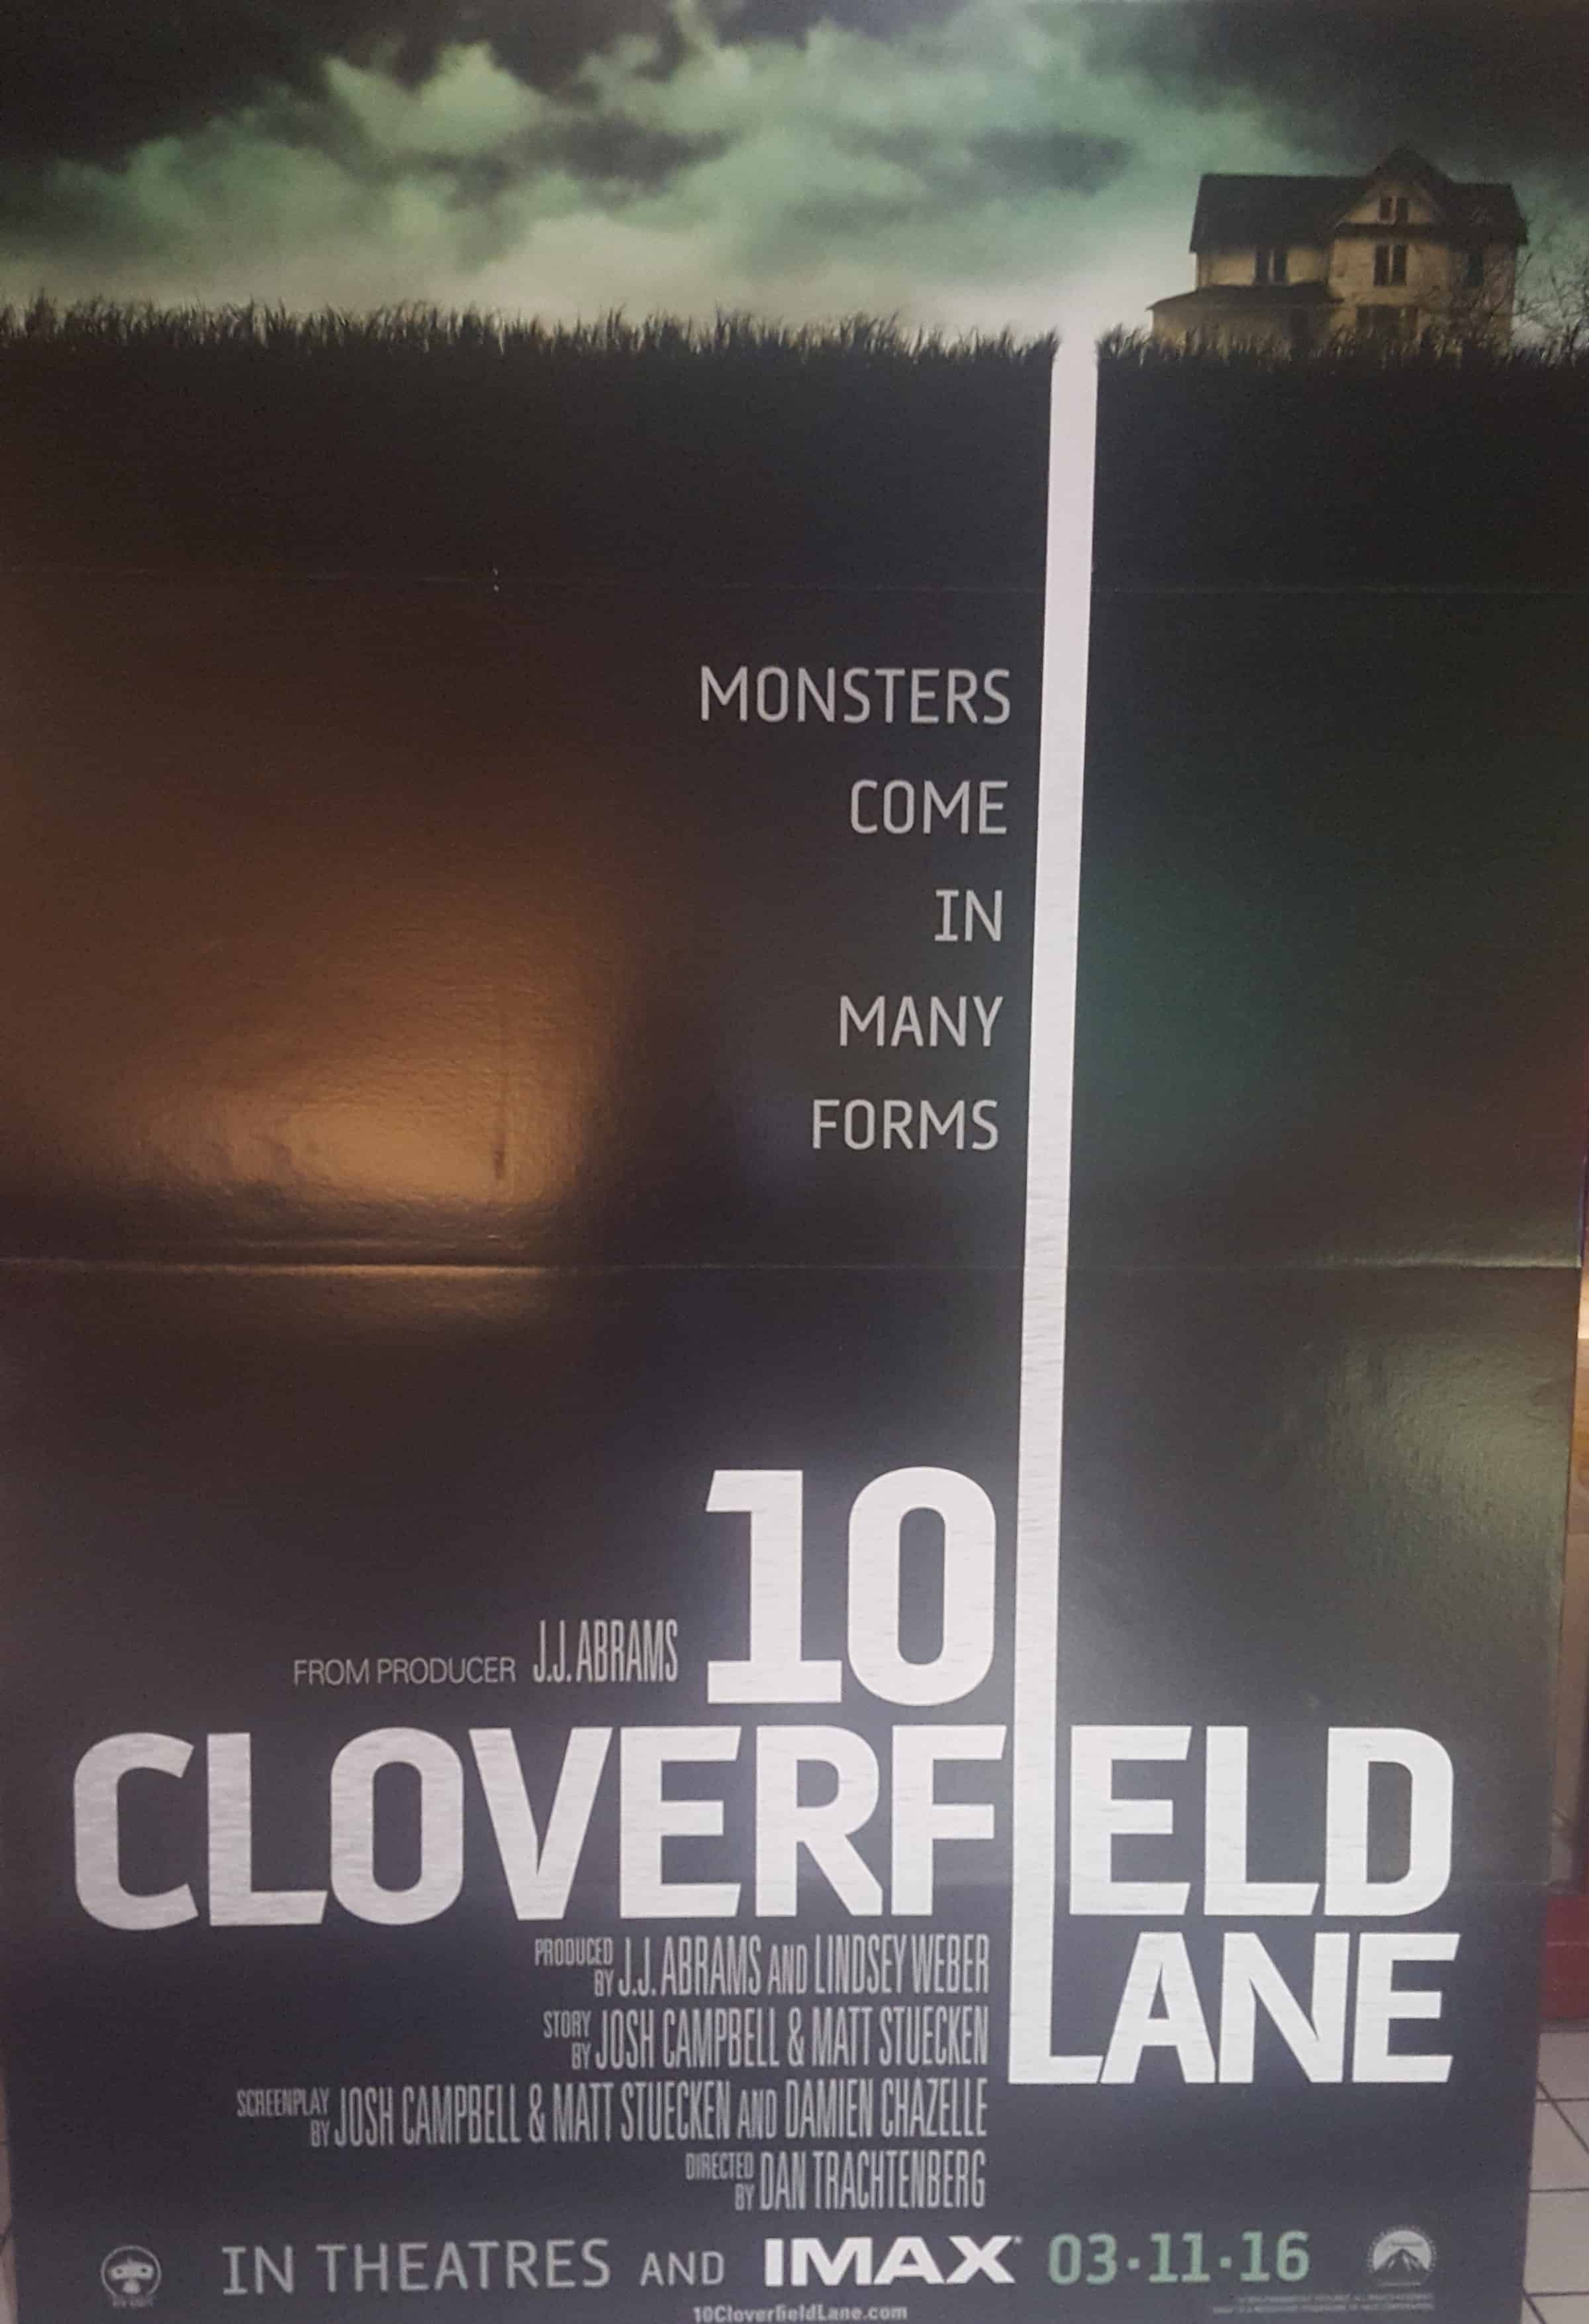 leadership lessons from 10 Cloverfield Lane